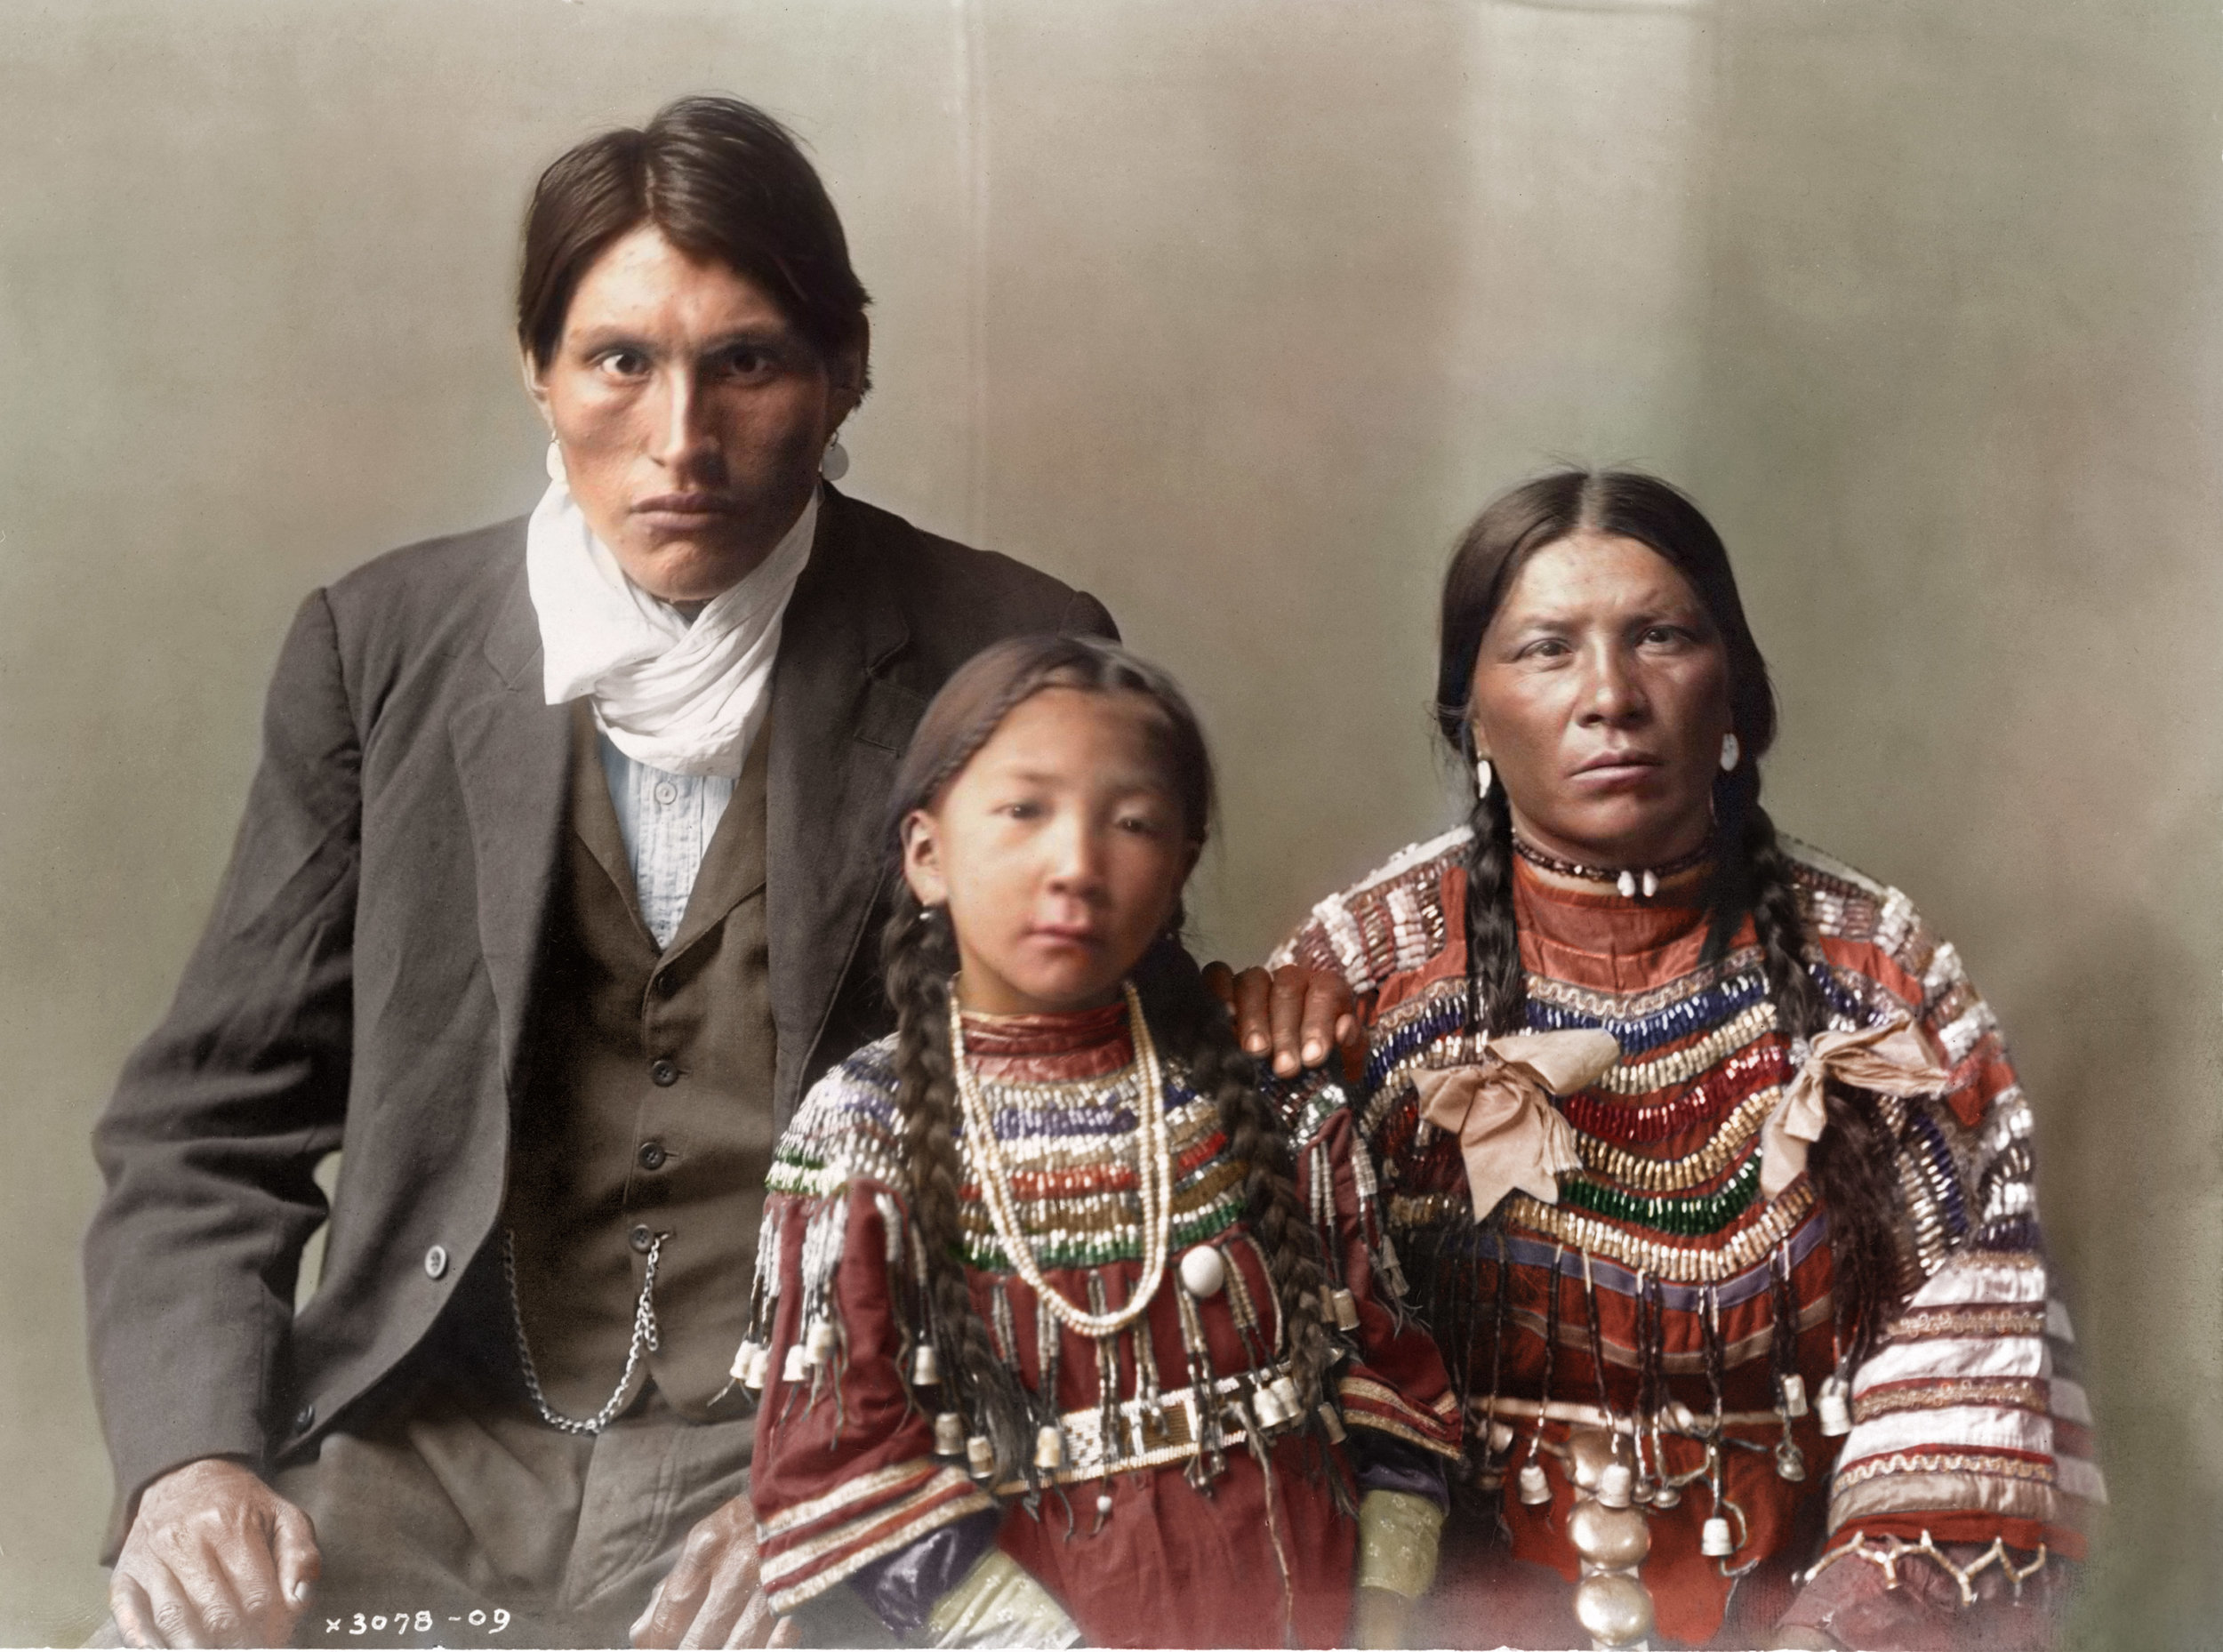 Colorized by Okkama Colorizations at The Psychogenealogist (2019). Original photo by Edward S. Curtis (1868-1952) in 1910.